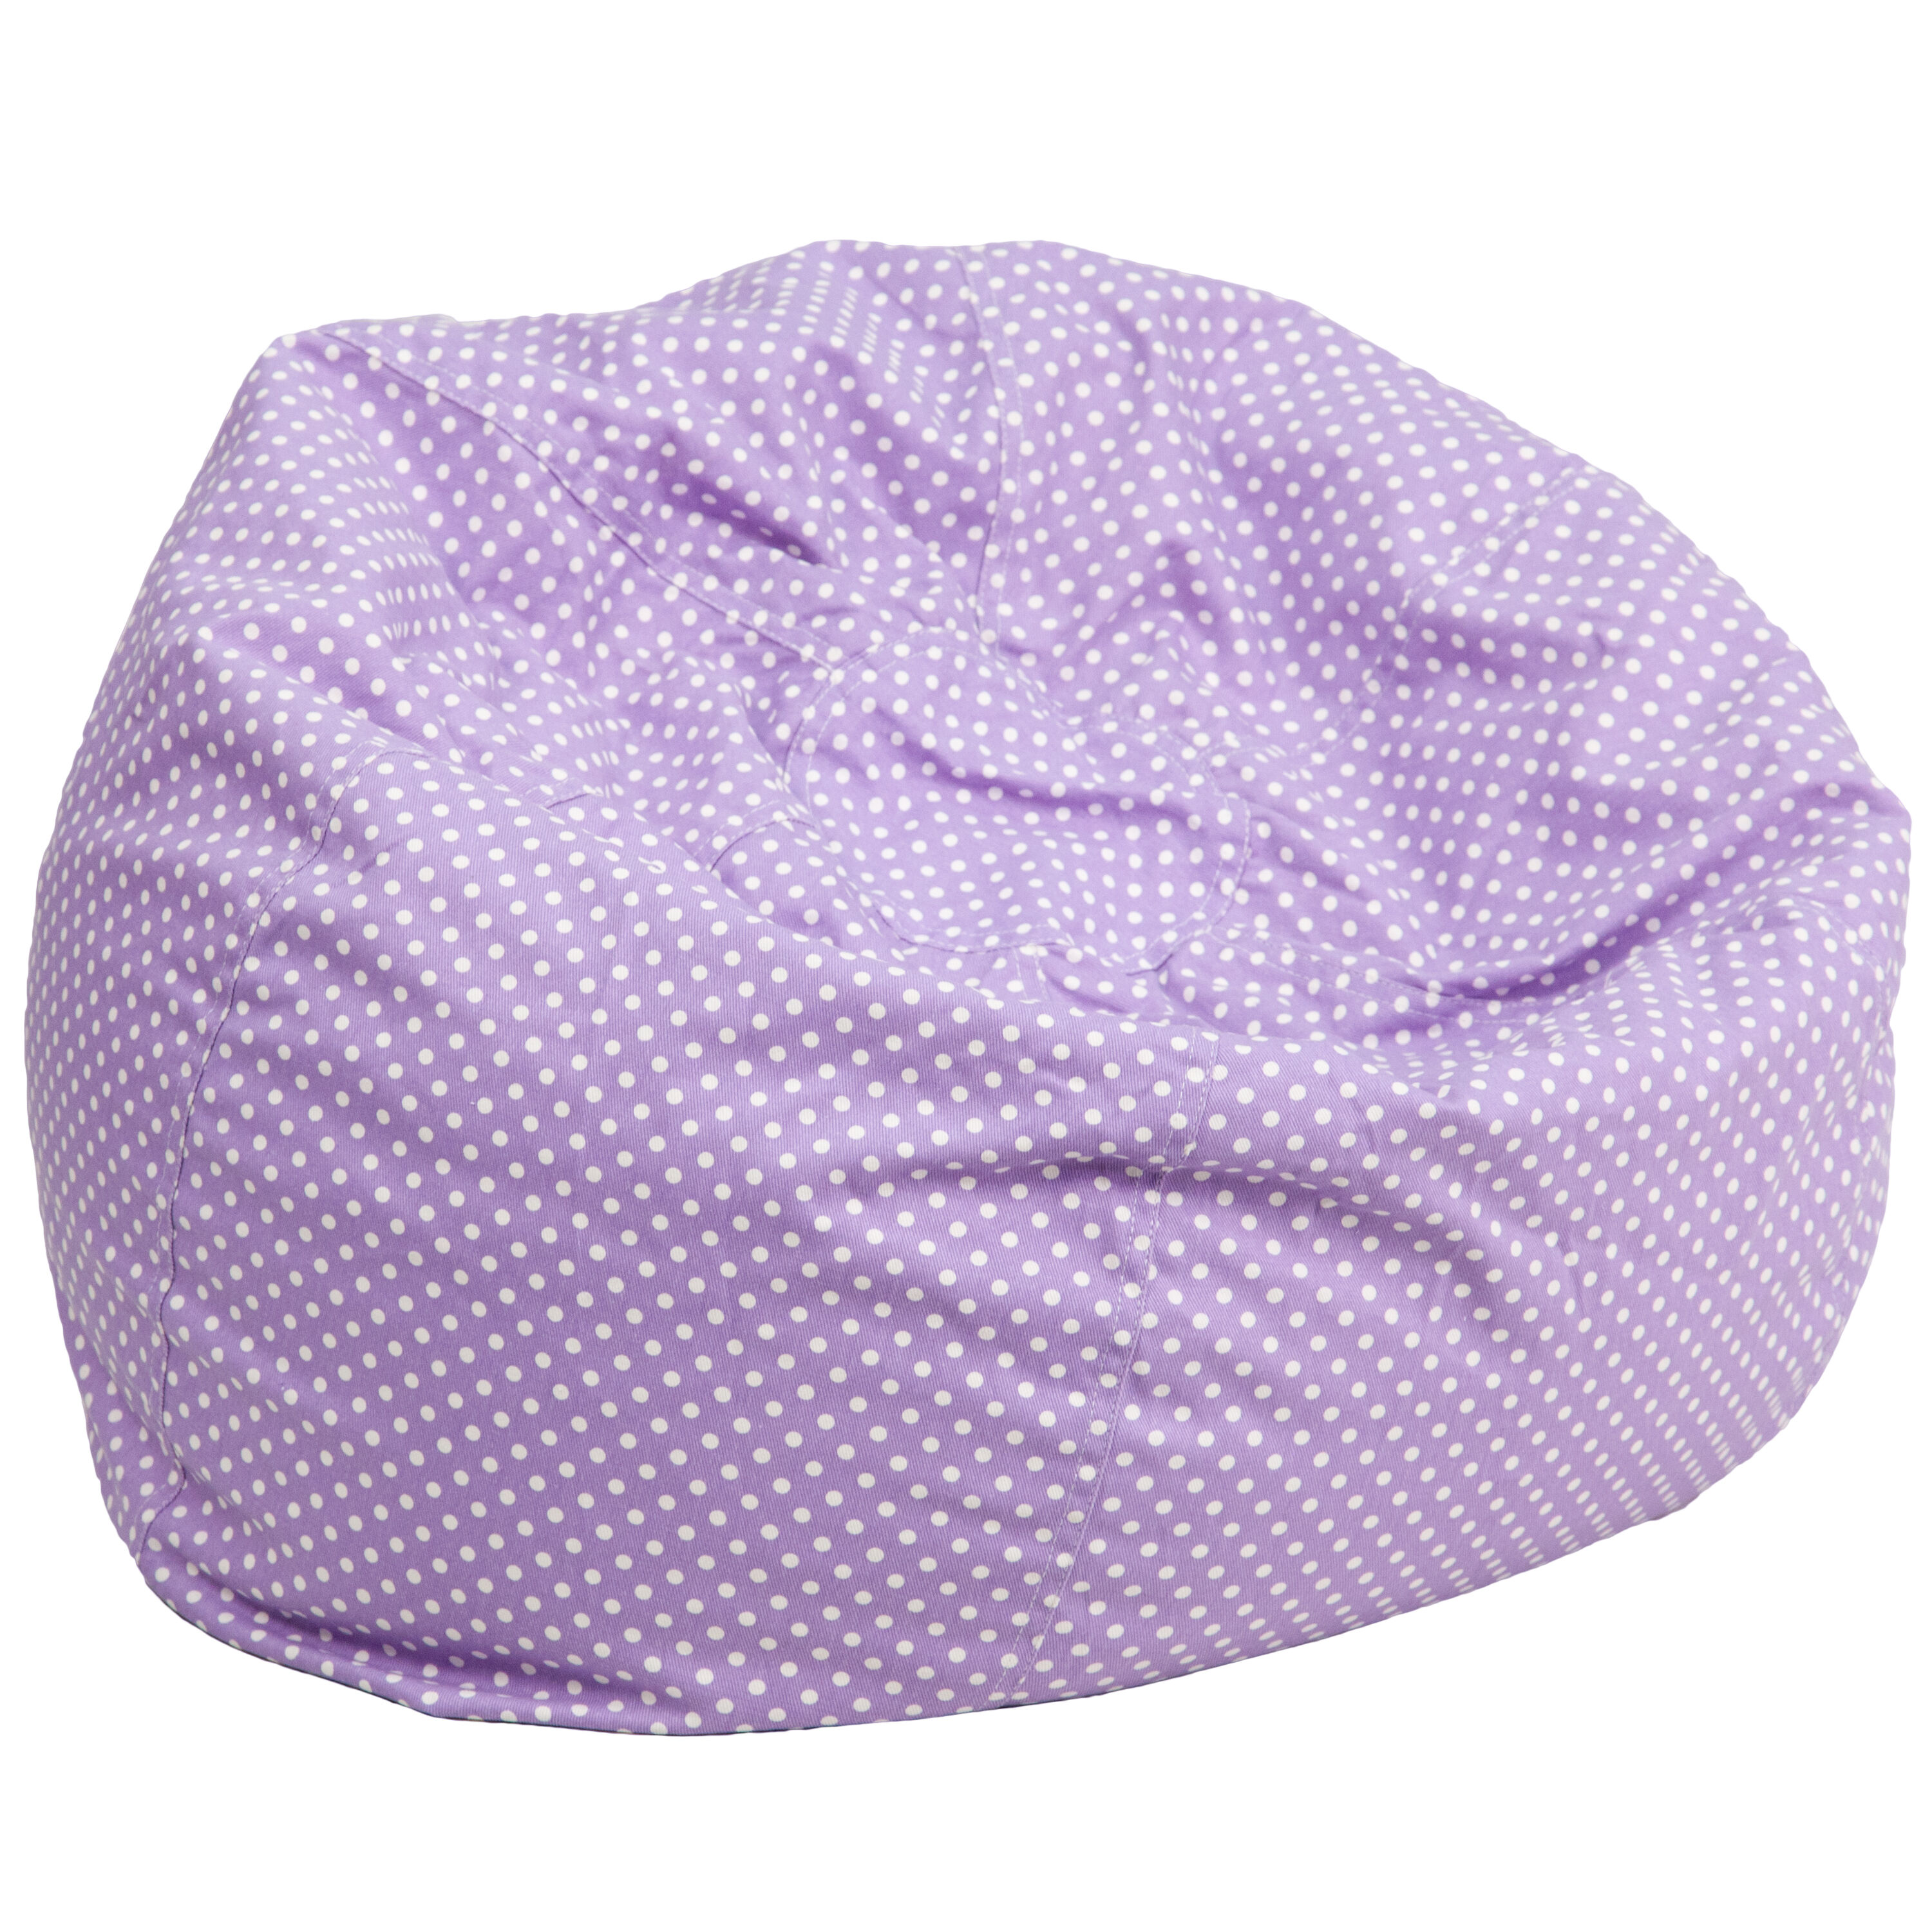 Images. Our Oversized Lavender Dot Bean Bag Chair ...